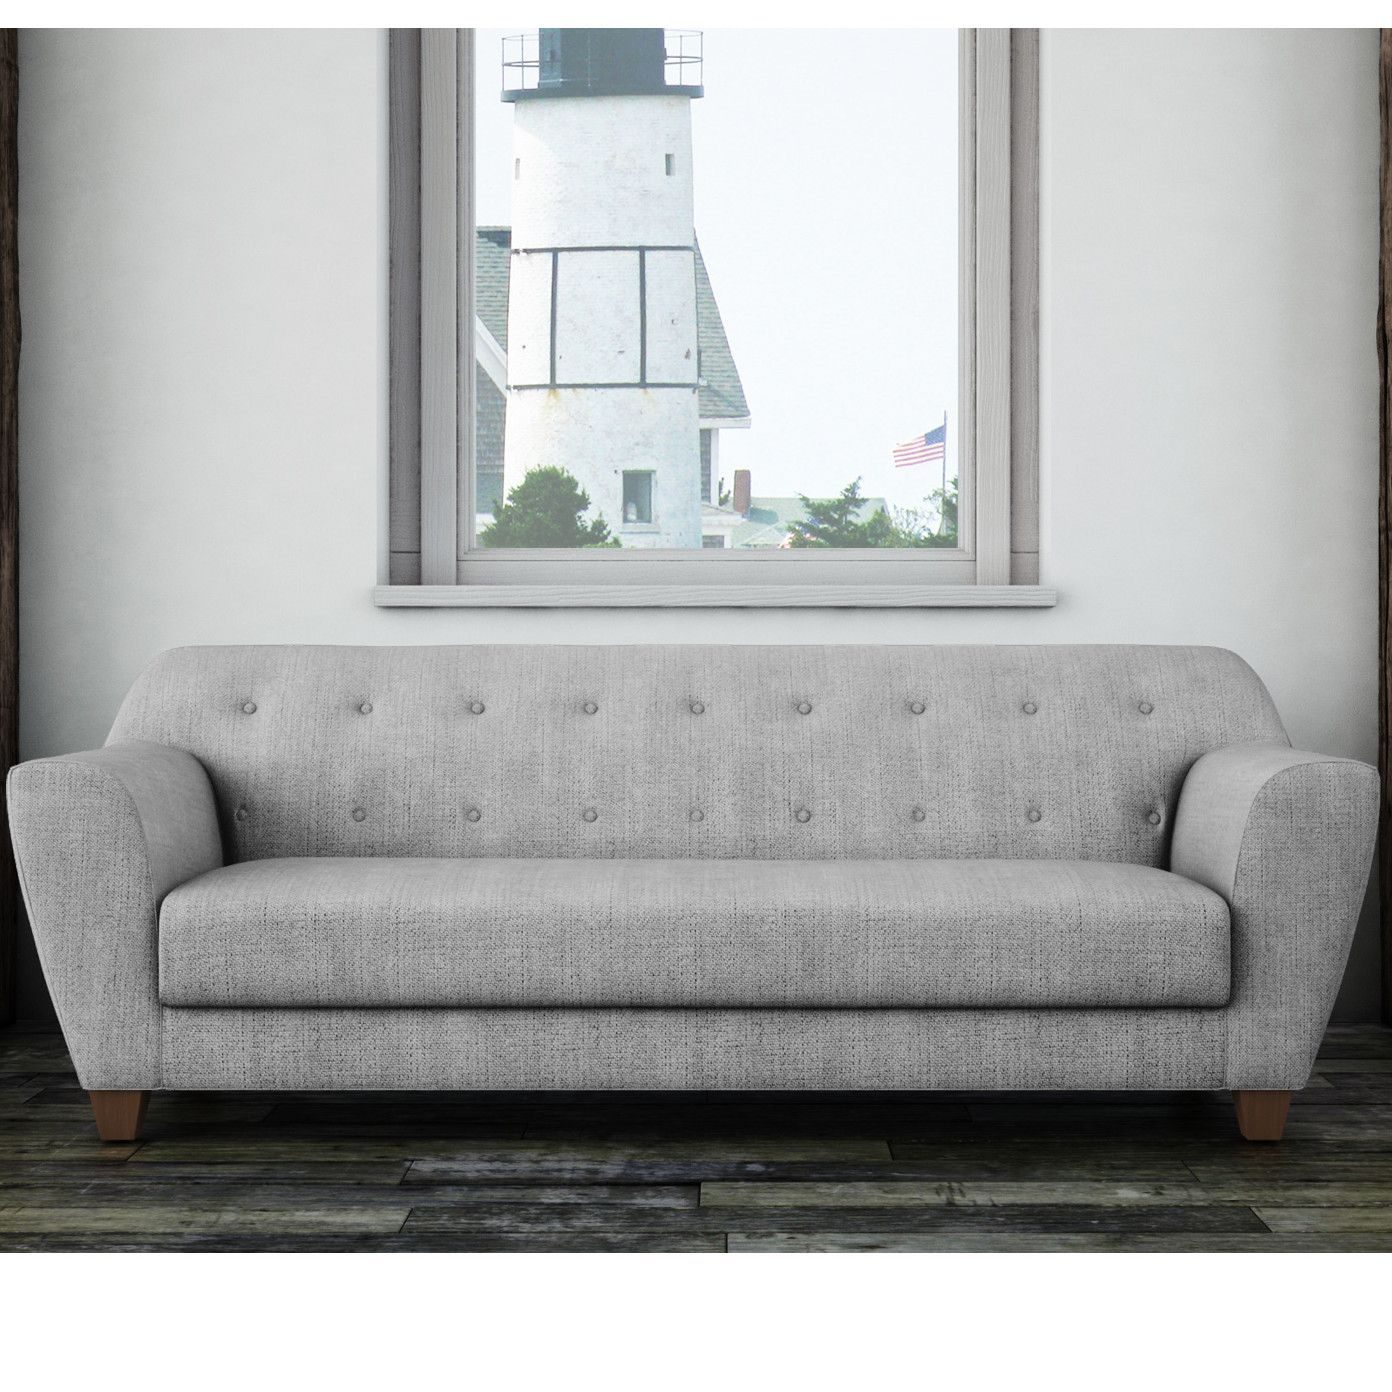 Langley street canyon sofa